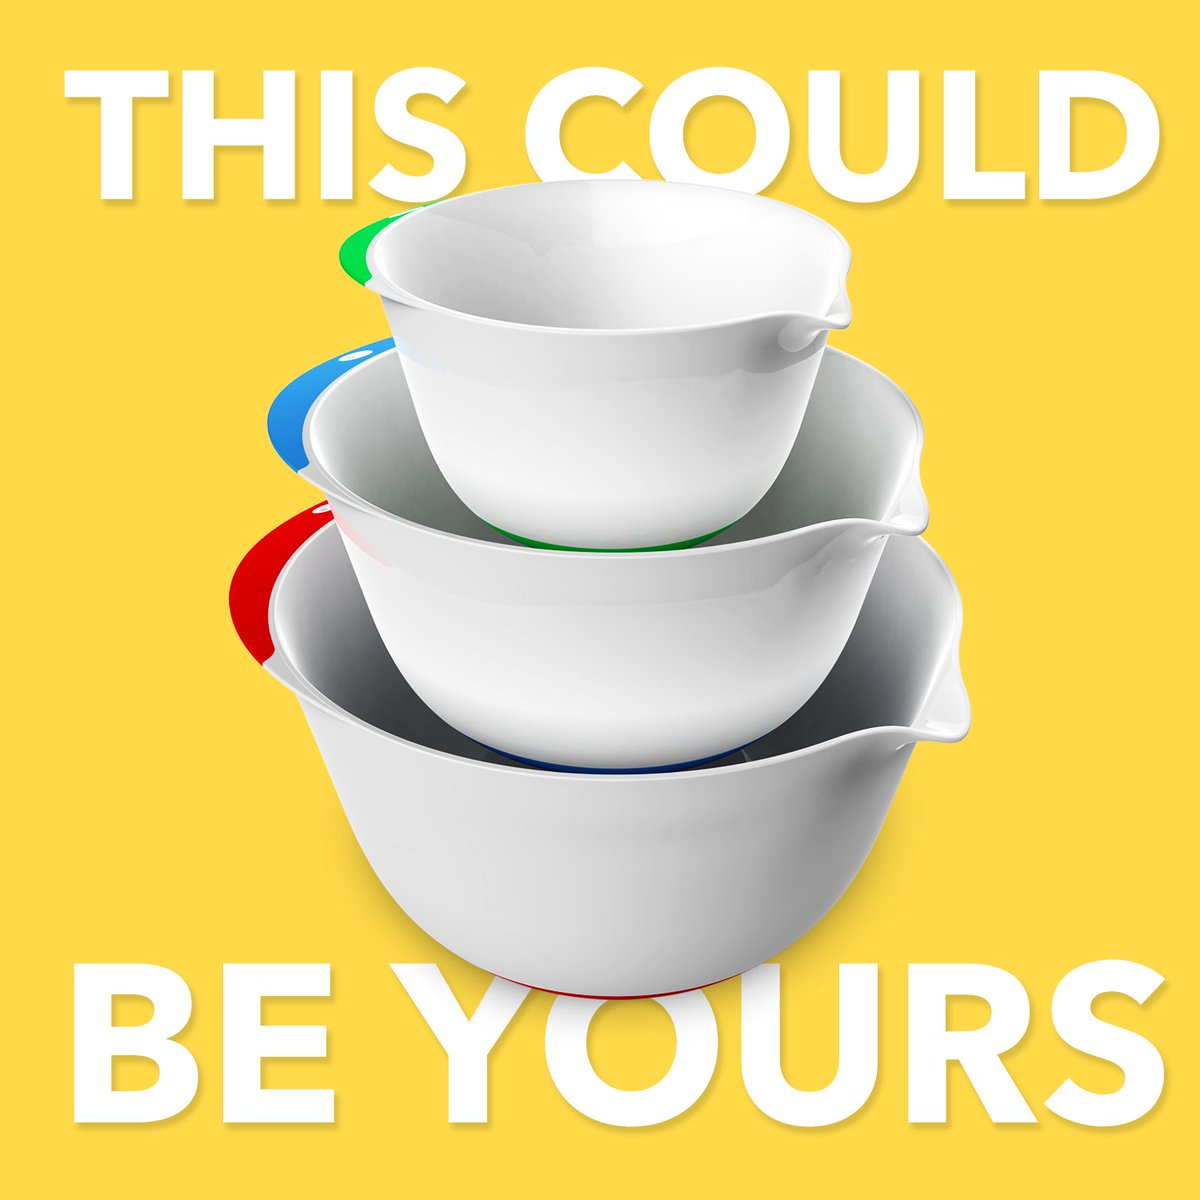 Vremi's Winter of Deals is bowling forward...see what we did there...thank you. So sign up for a chance to get yourself a mixing bowl set or a great discount on a mixing bowl set. Give it a shot, a winner may very well be you!  https://t.co/Ghee8c5hU4 https://t.co/mfLfgOPlfx